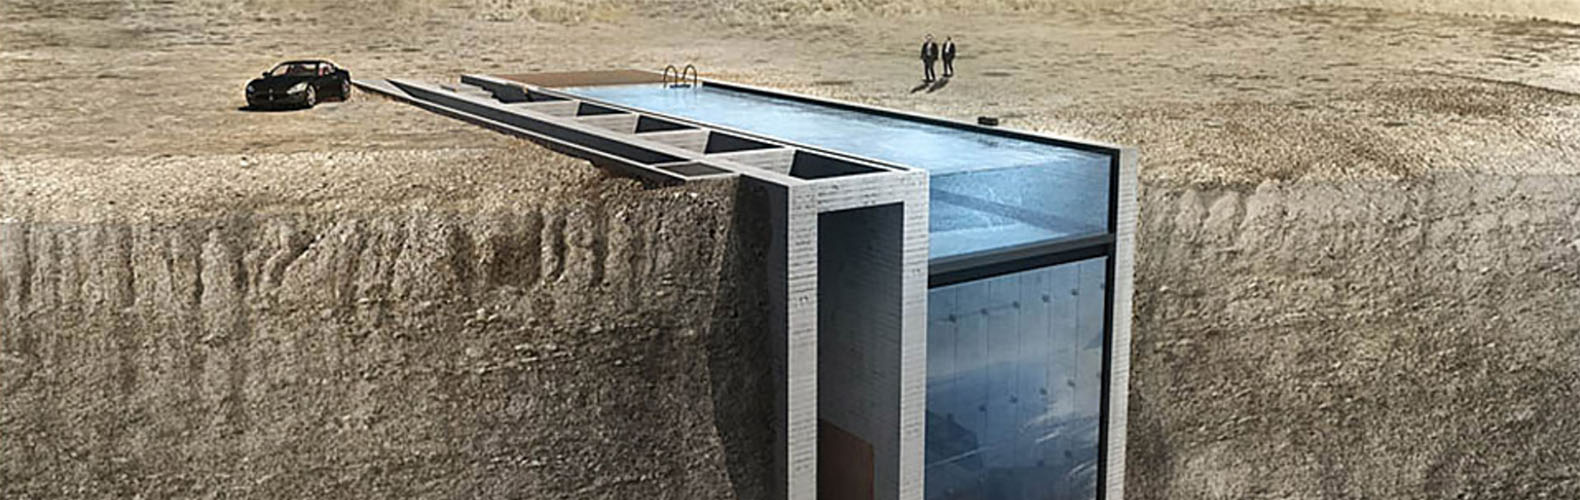 crazy home carved into a coastal cliff has a swimming pool roof casa brutale opa inhabitat green design innovation architecture green building